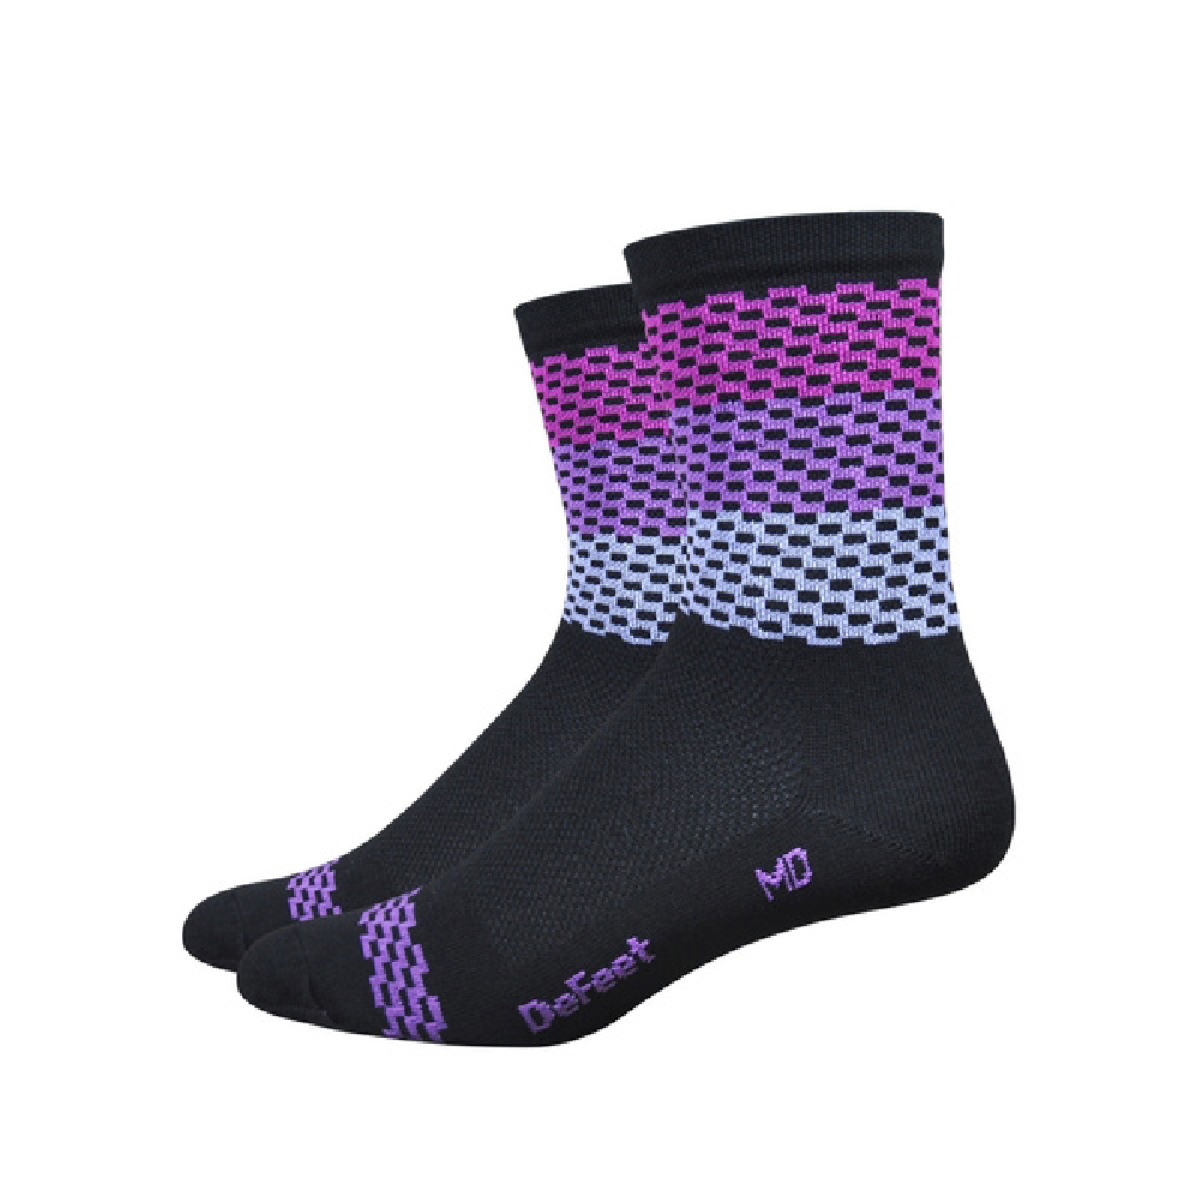 Chaussettes DeFeet Aireator Charleston - S Black/Purple Chaussettes